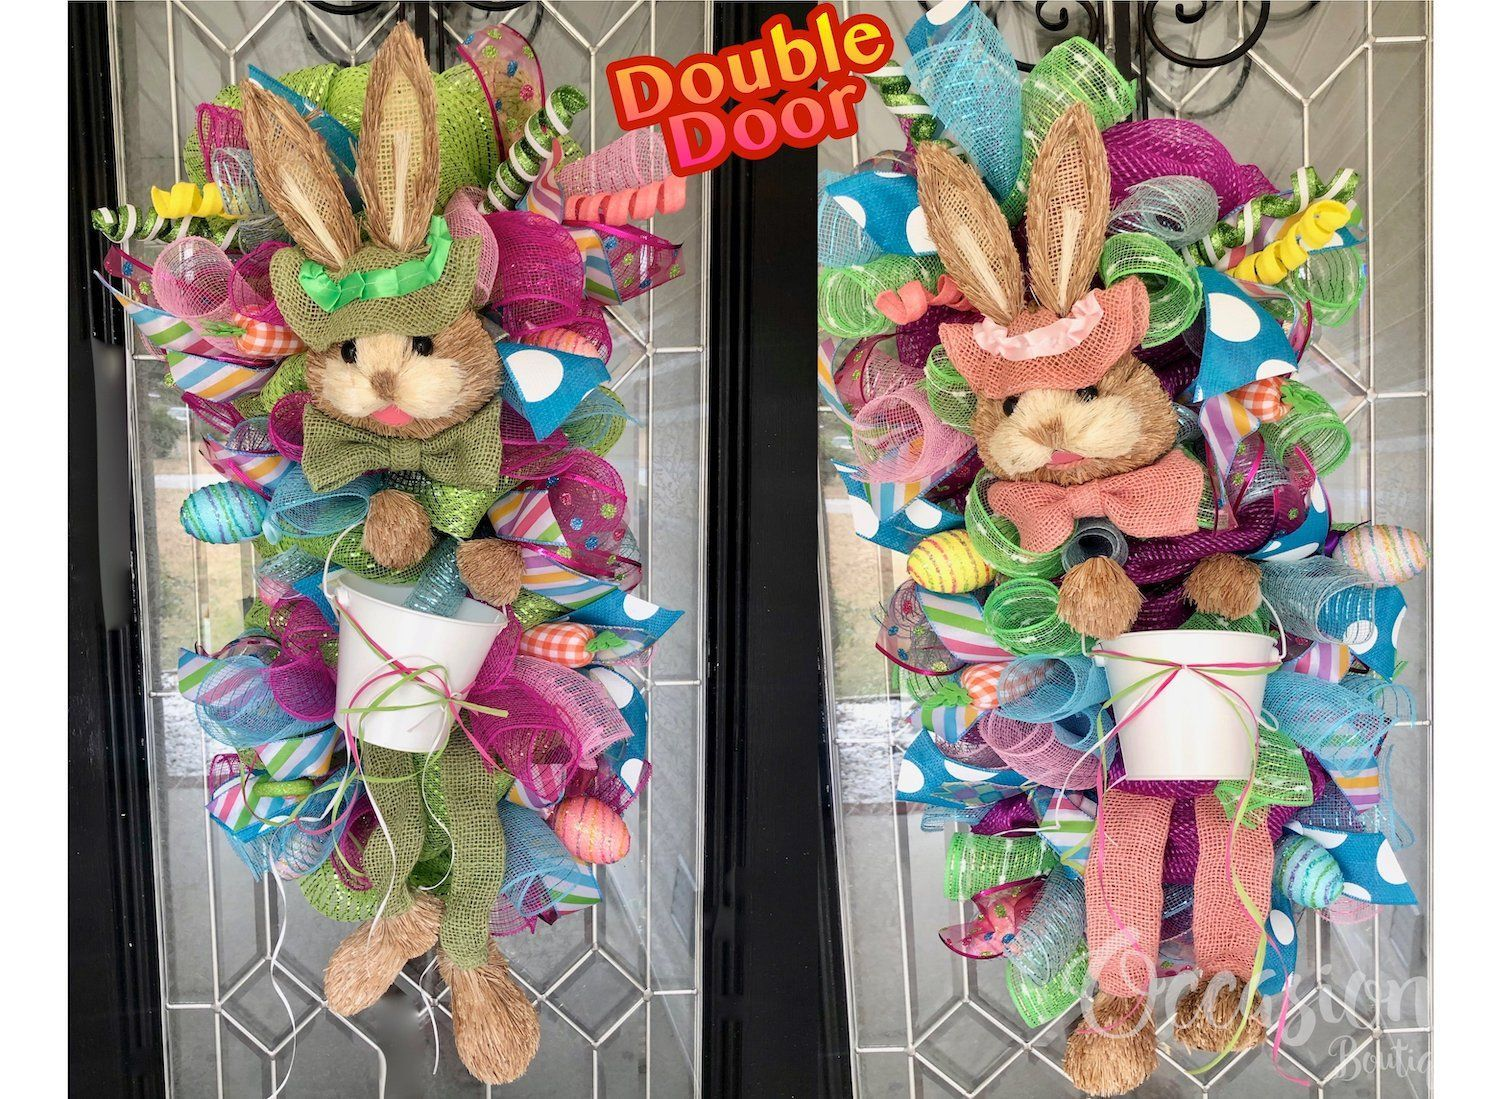 Double Door Easter Wreaths, Easter Door Swag, Easter Bunny Door Hanger, Easter Decoration, Spring Wreaths, Double Door Wreaths #doubledoorwreaths Double Door Easter Wreaths, Easter Door Swag, Easter Bunny Door Hanger, Easter Decoration, Spring Wreaths, Double Door Wreaths by OccasionsBoutique on Etsy #doubledoorwreaths